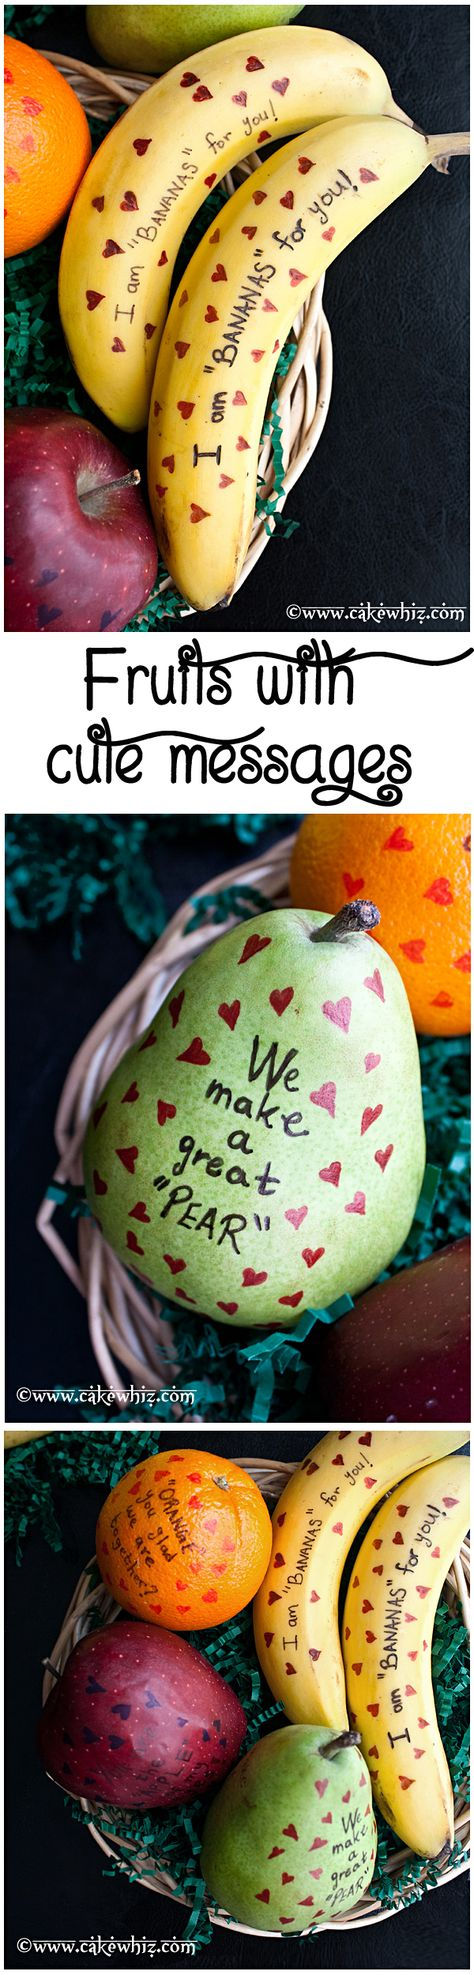 FRUITS with cute messages... fun to make with kids or surprise them by putting these adorable fruits in their school lunch boxes or even hubby's lunch box :) From cakewhiz.com